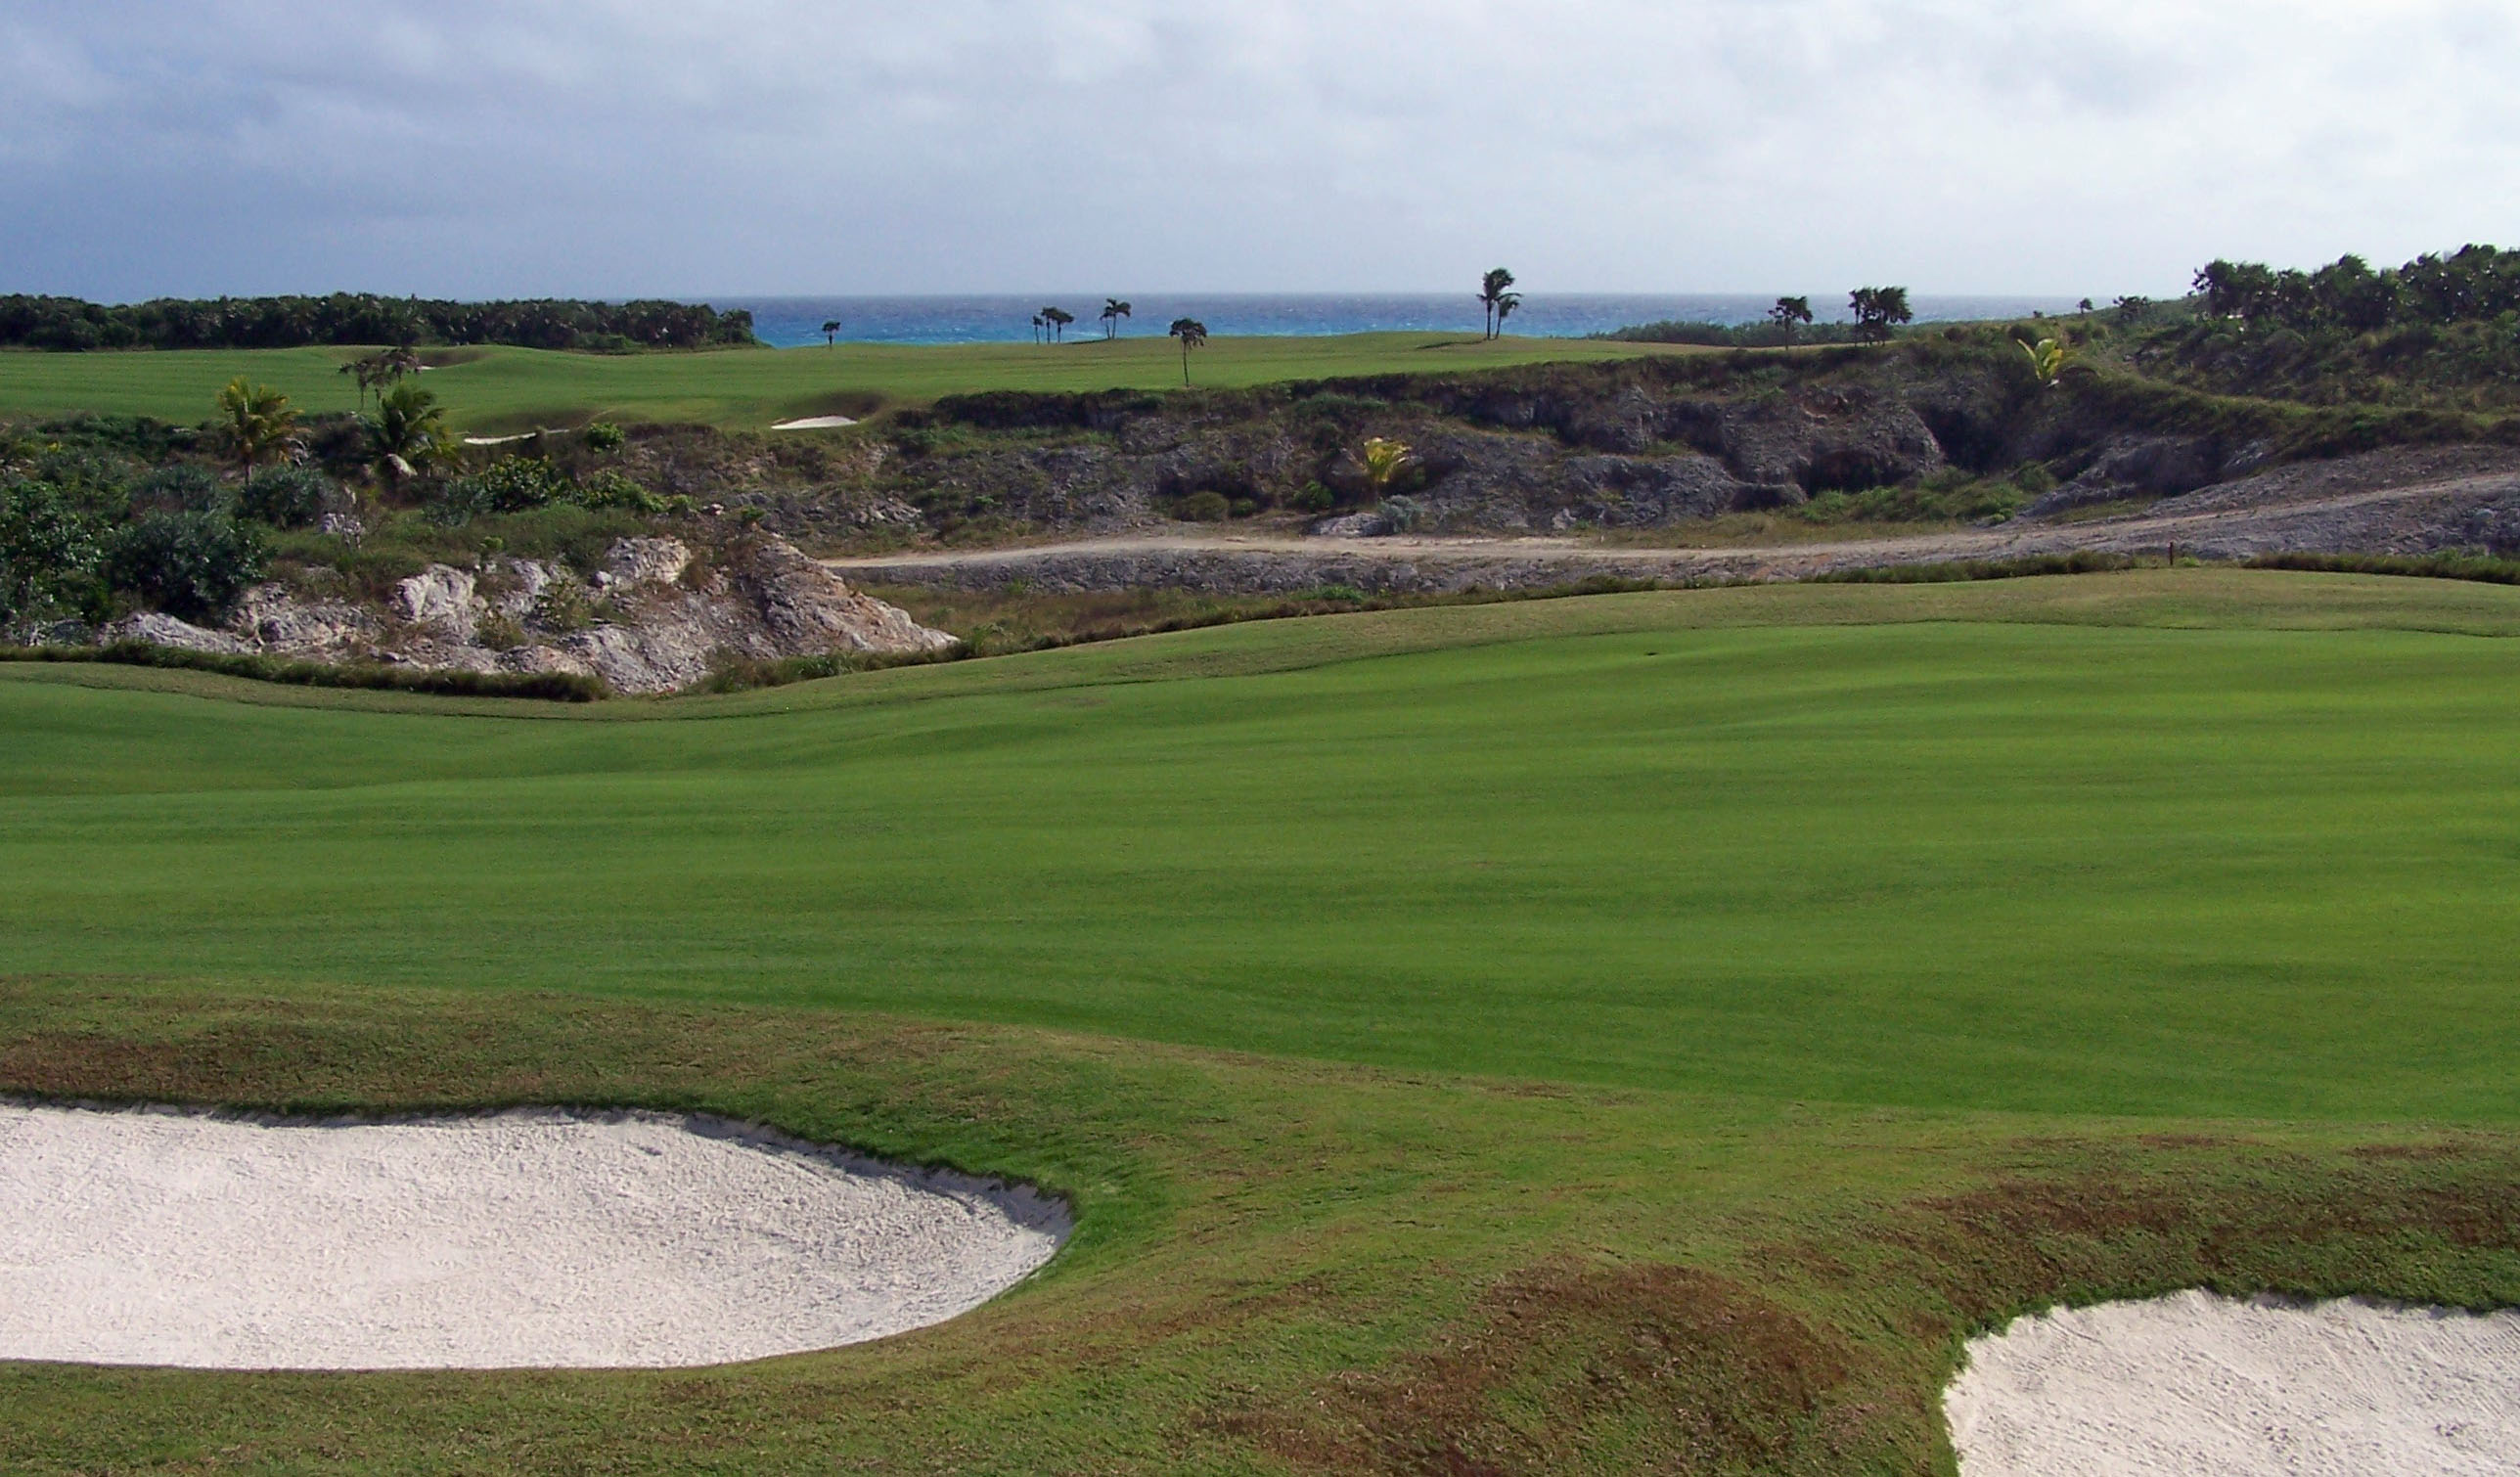 The Abaco Club on Winding Bay Hole #15